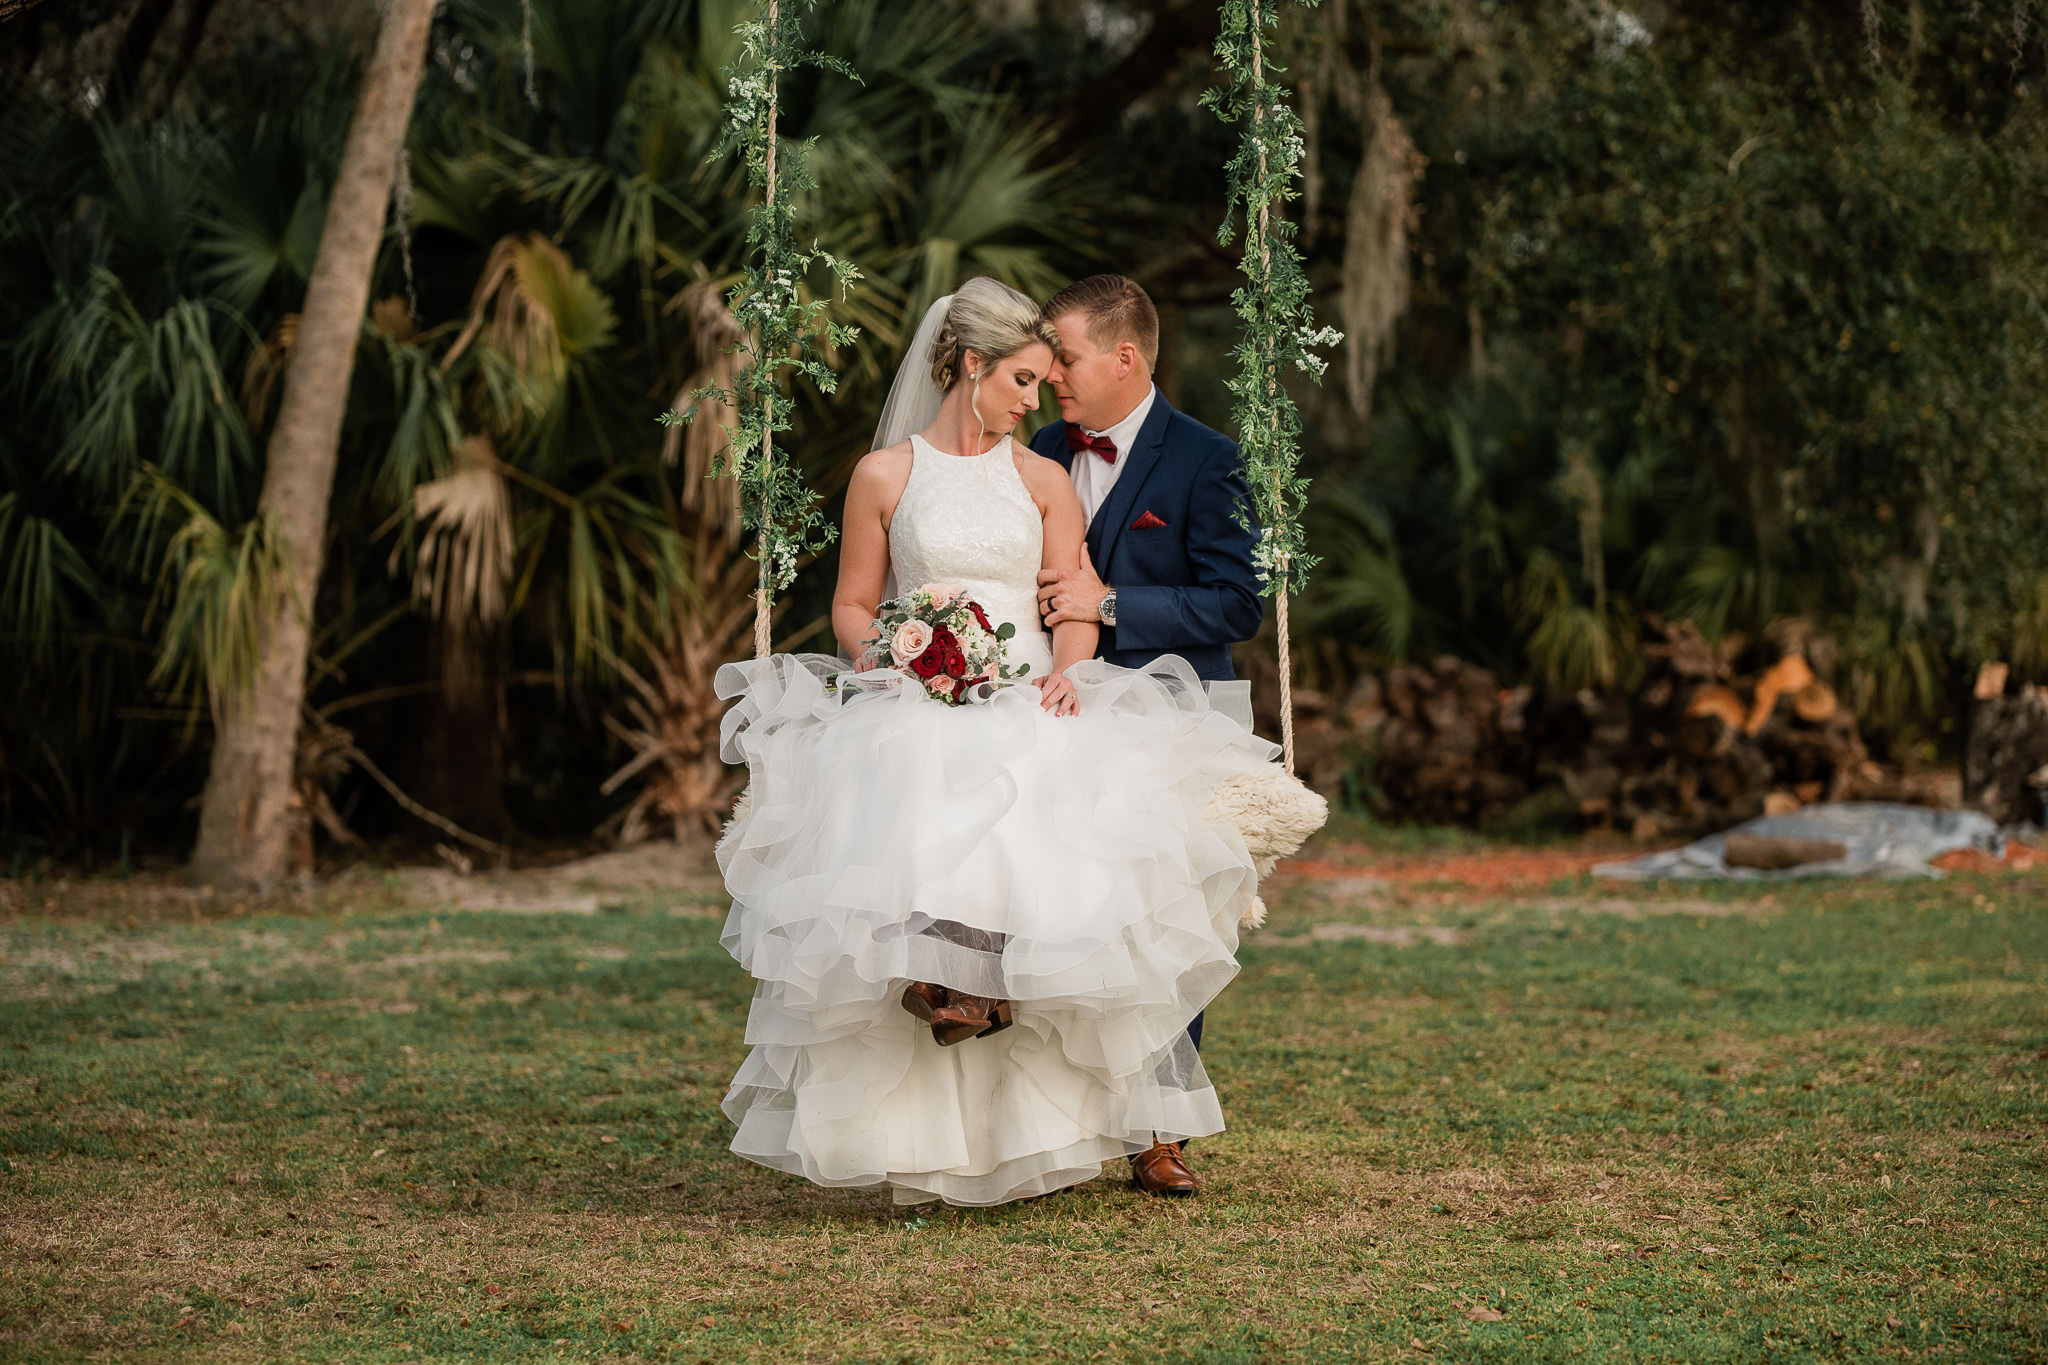 TAMPA_WEDDING_PHOTOGRAPHER_DRMZ_SPARROW_BARN_39.jpg